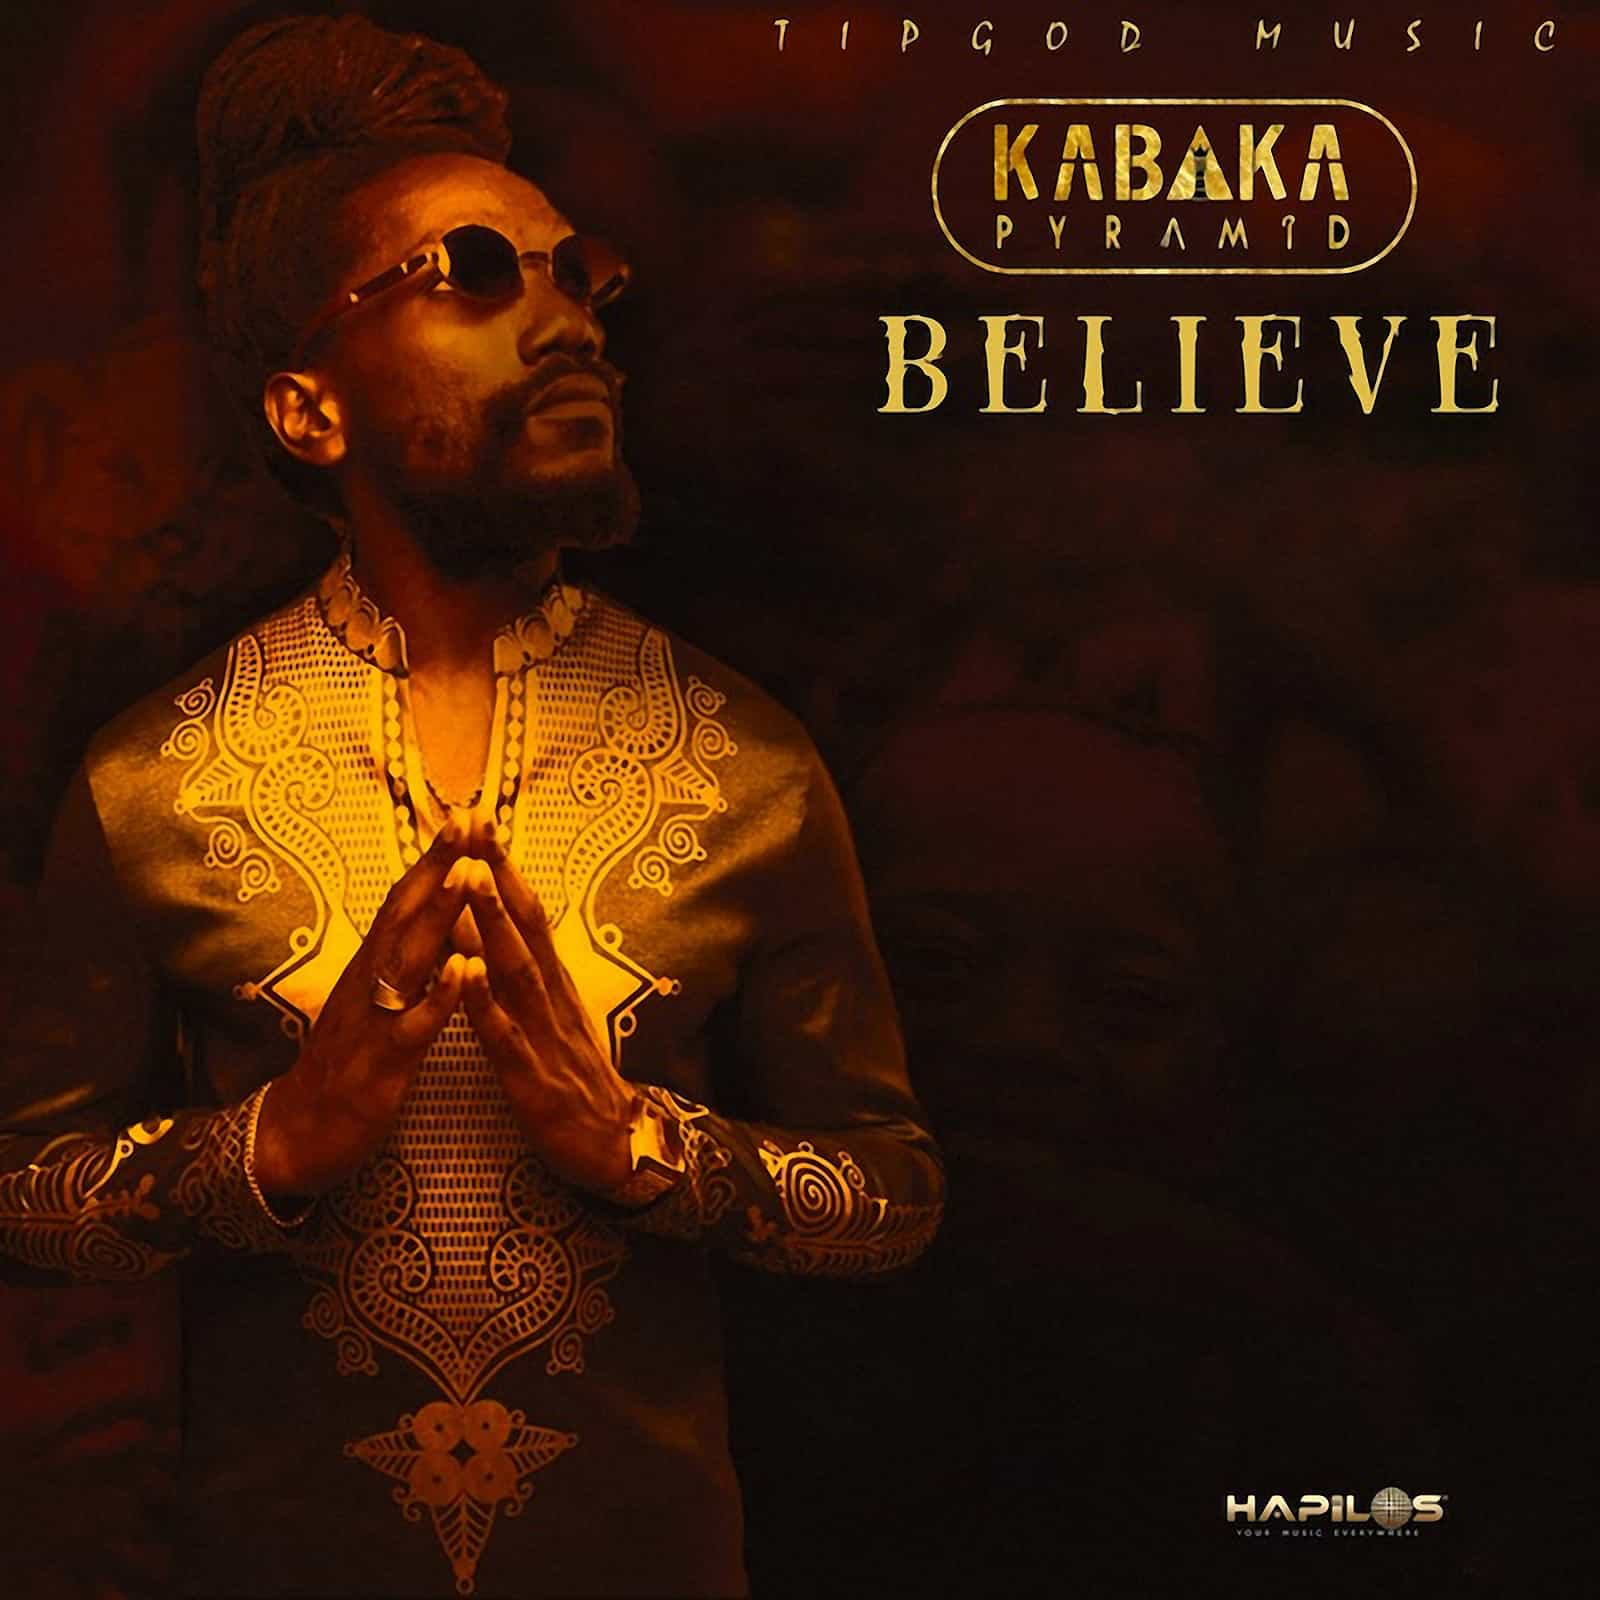 Kabaka Pyramid - Believe - TipGod Music Limited